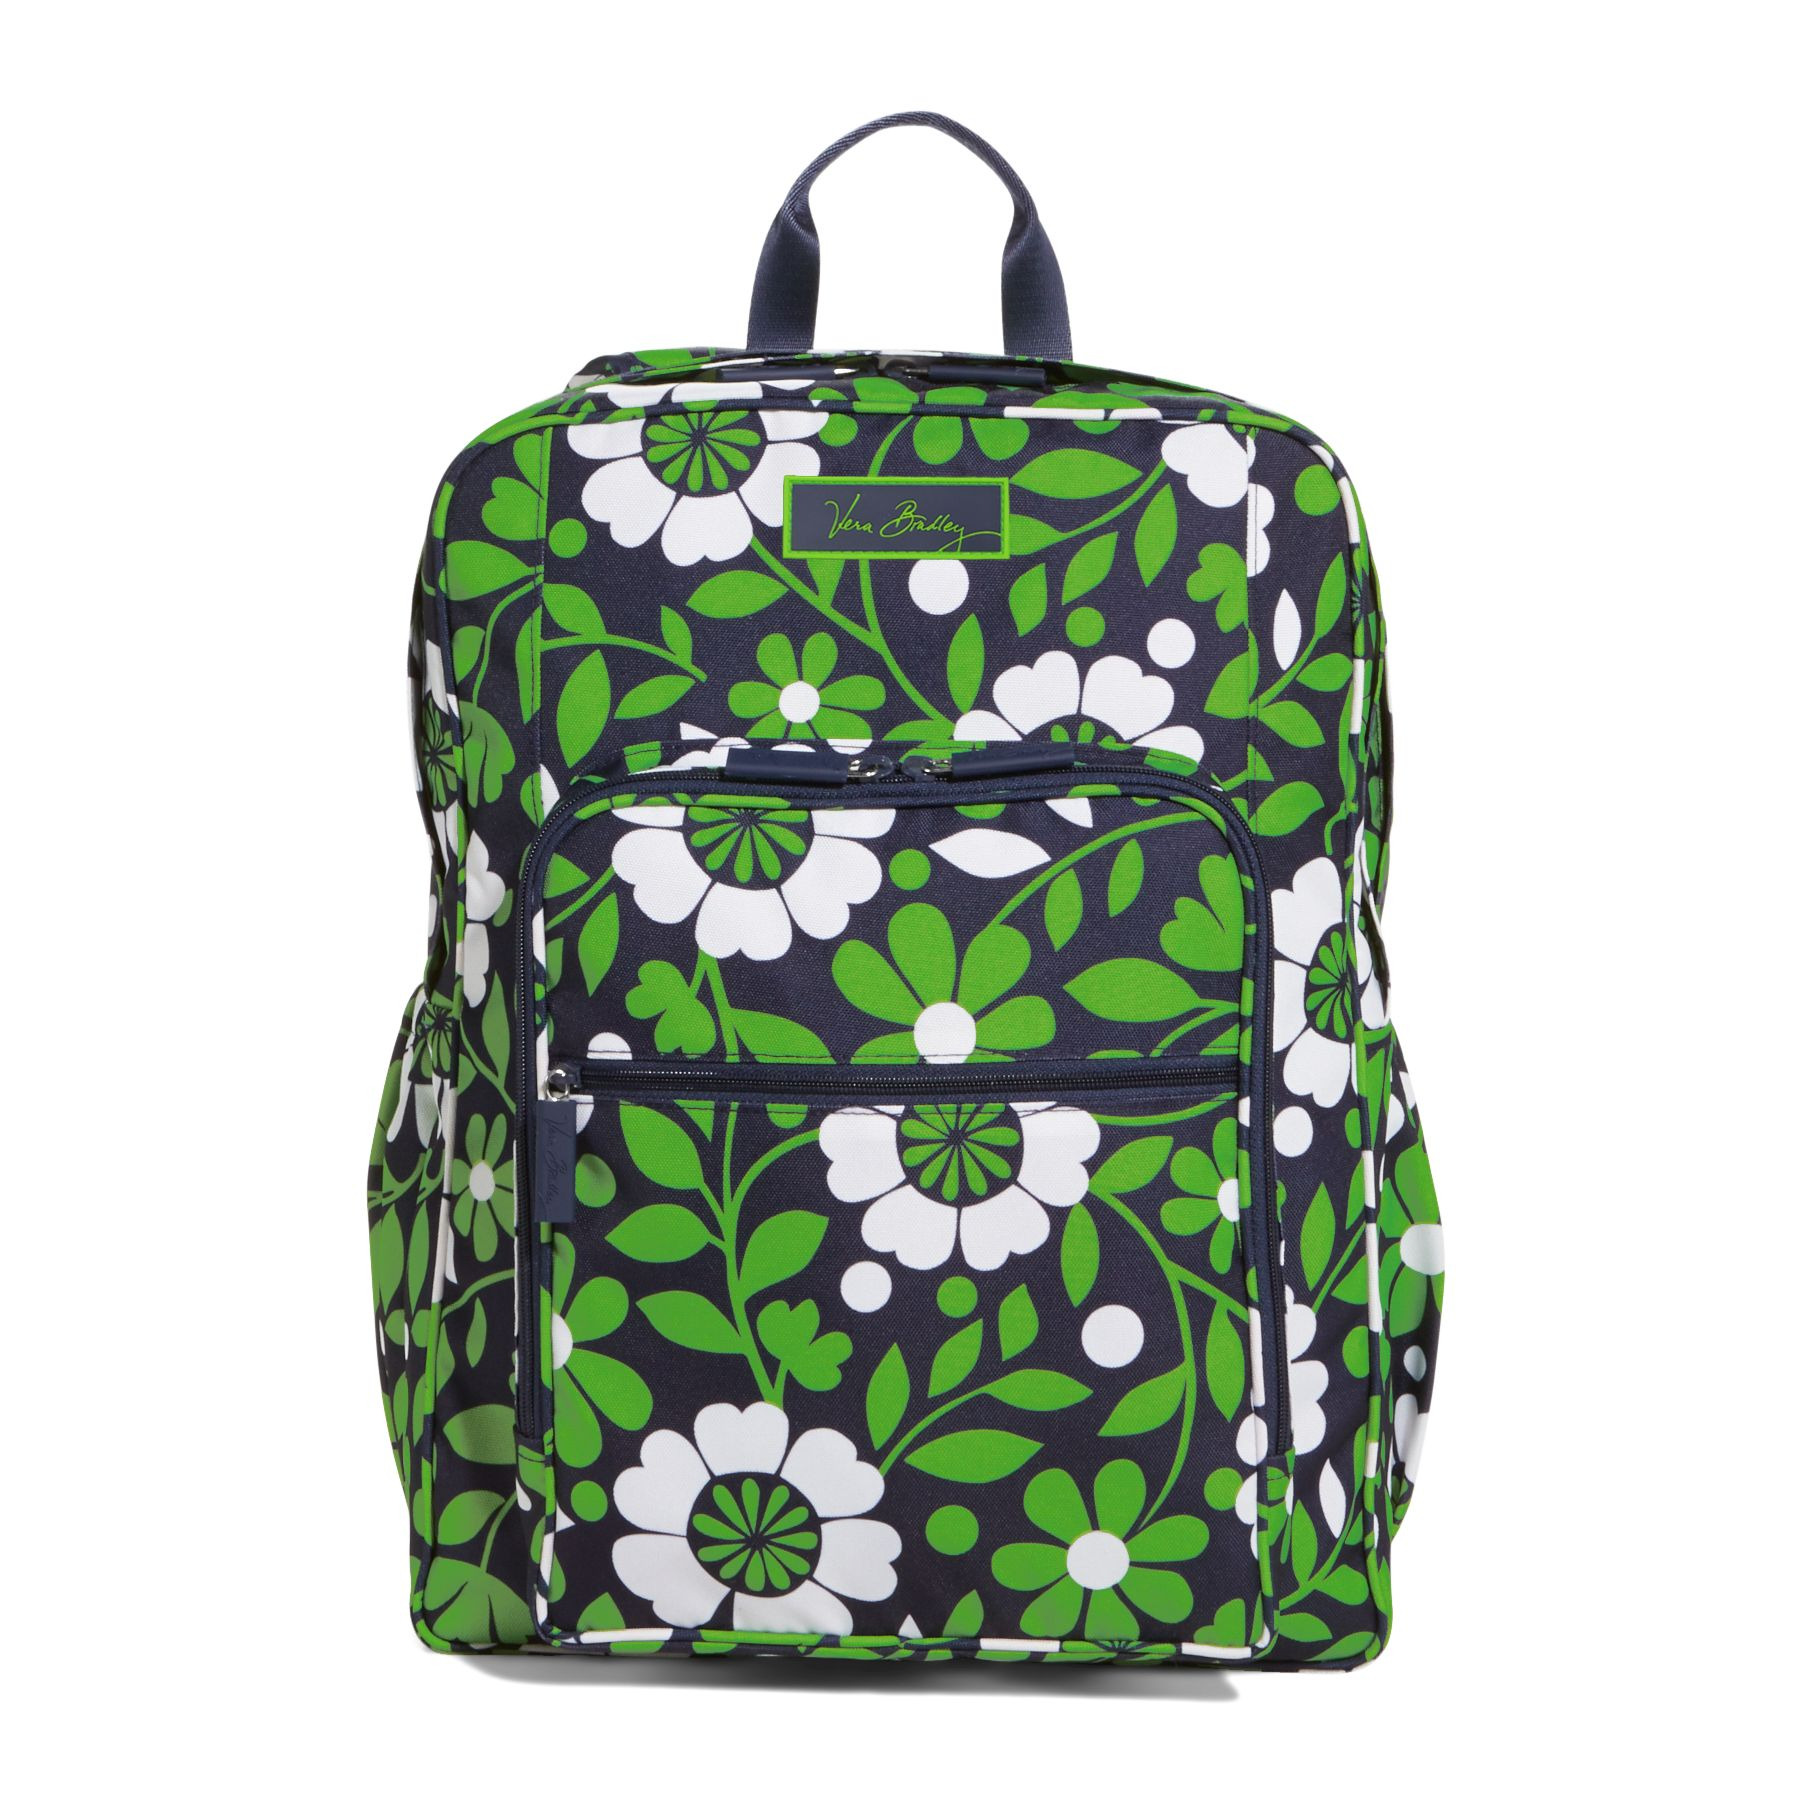 Vera Bradley Lighten Up Large Backpack in Lucky You